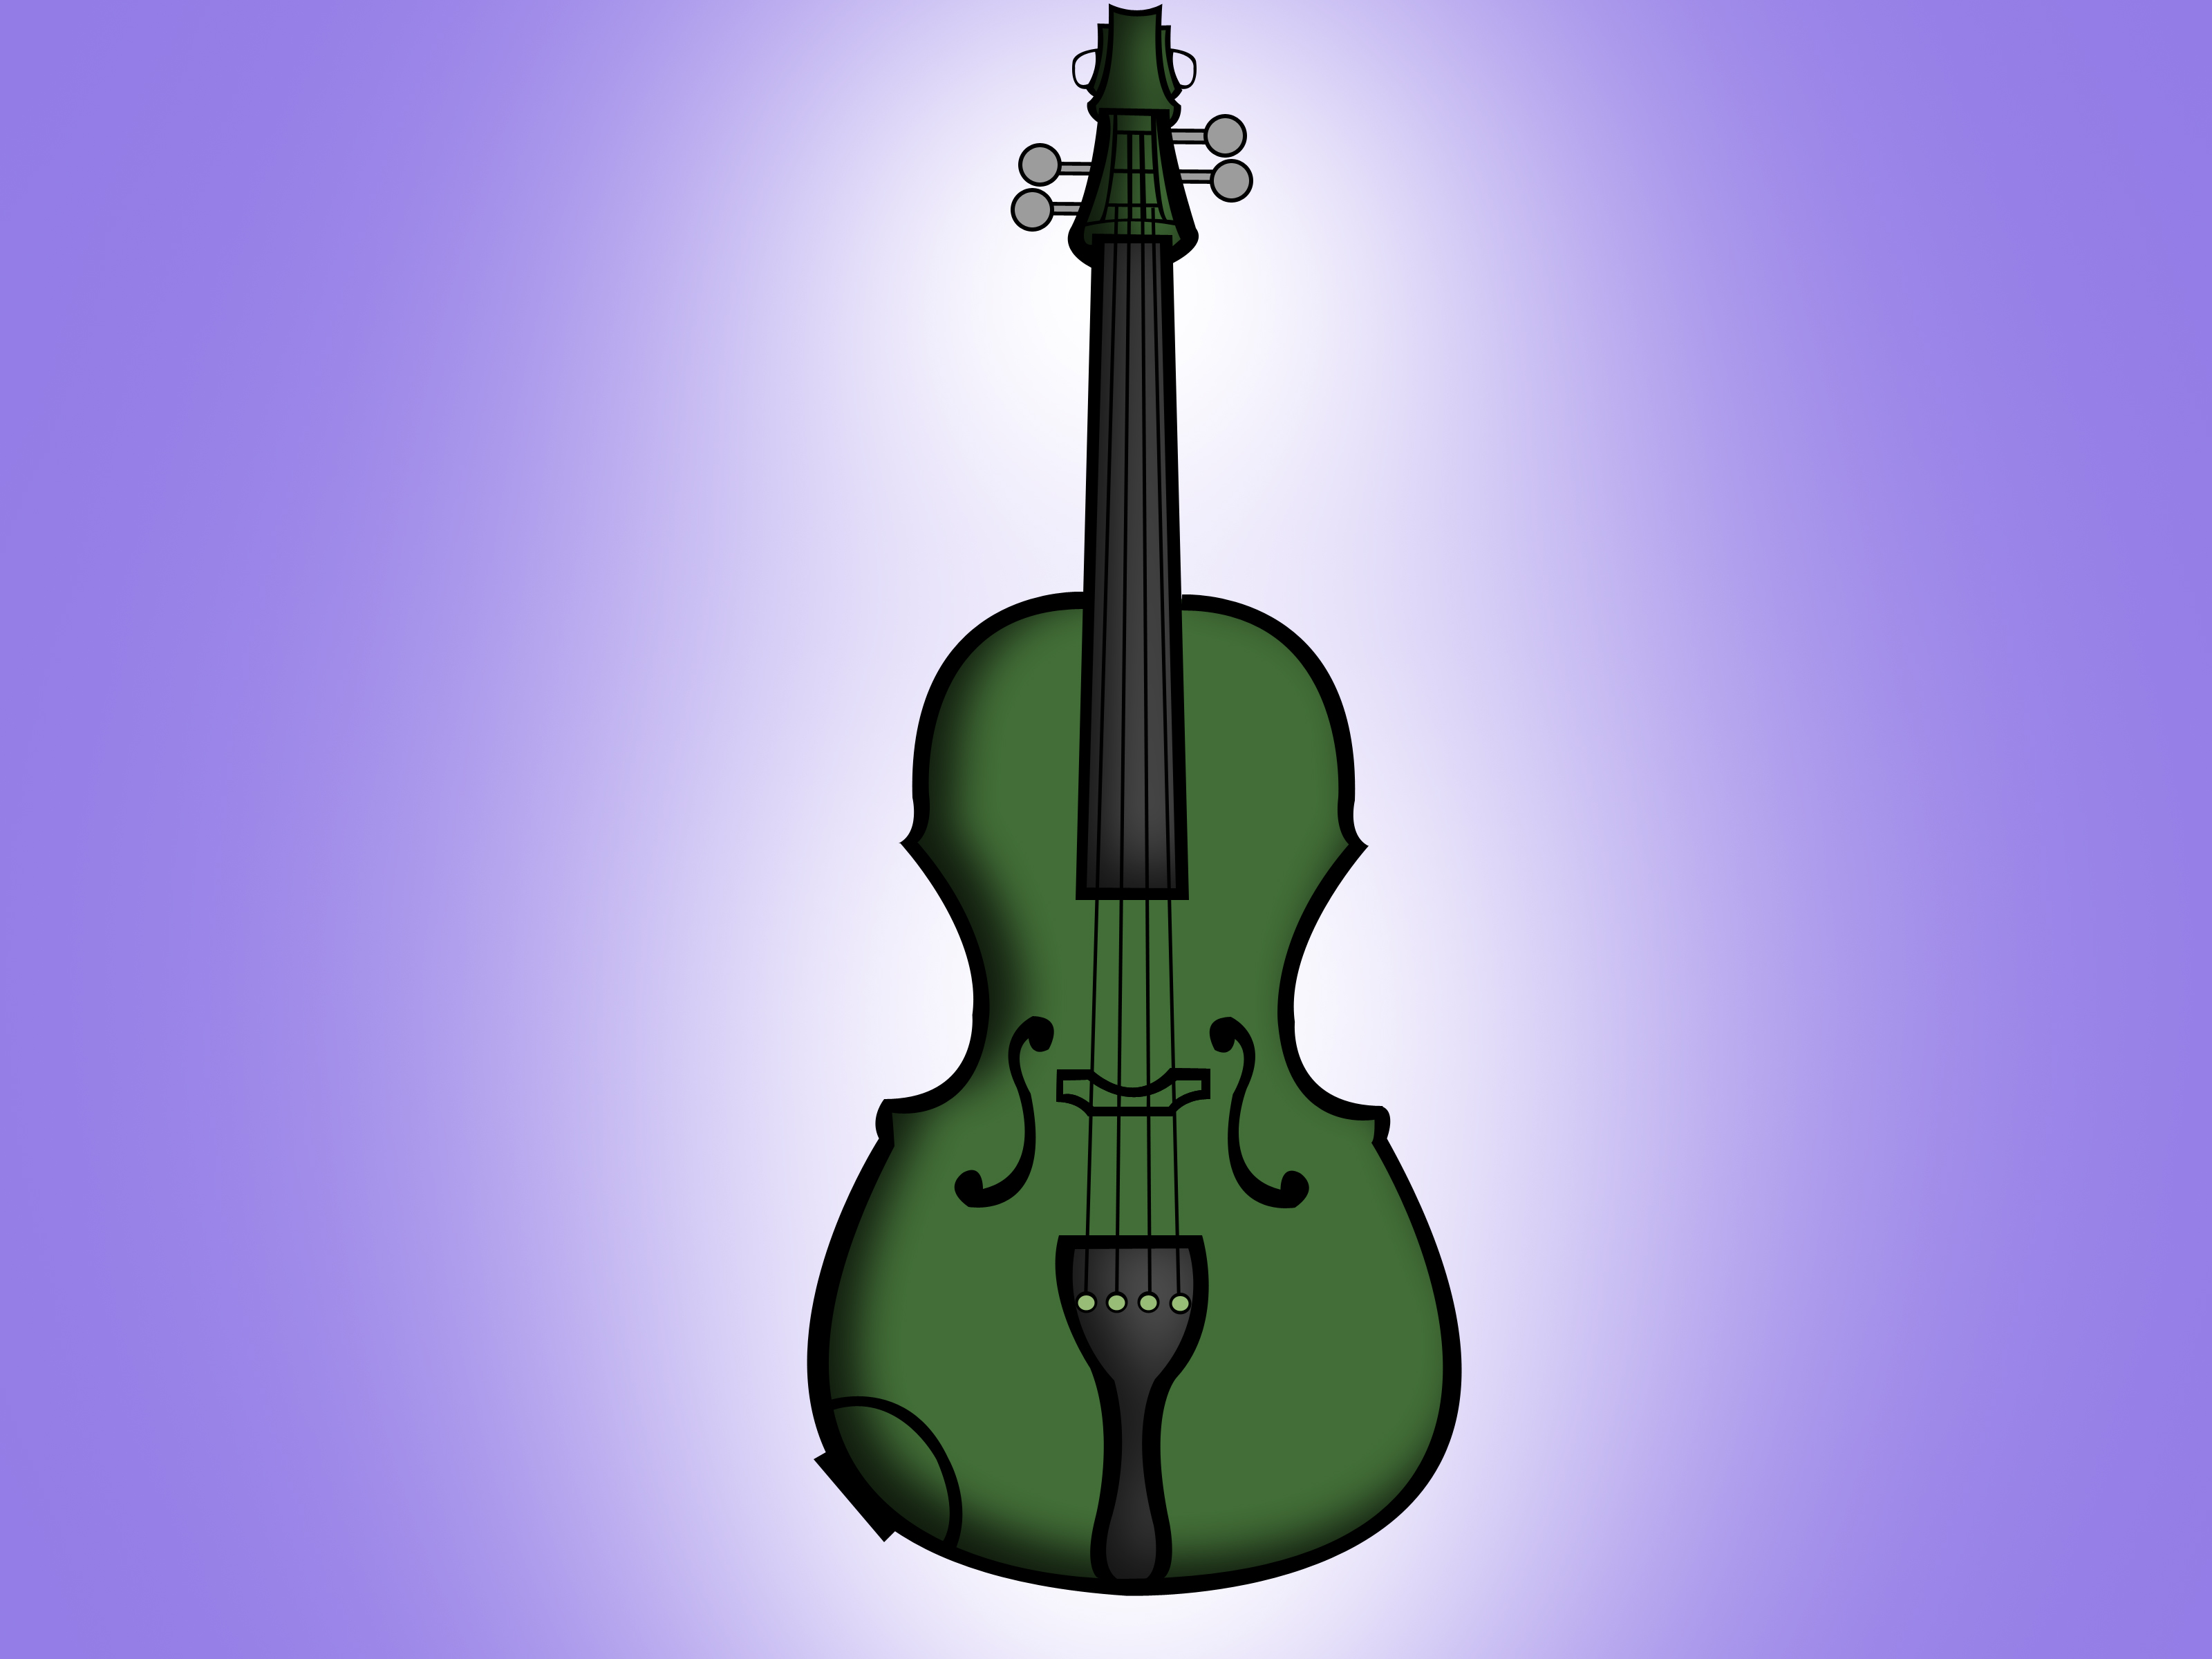 Drawn violin color Draw 15 to wikiHow Steps